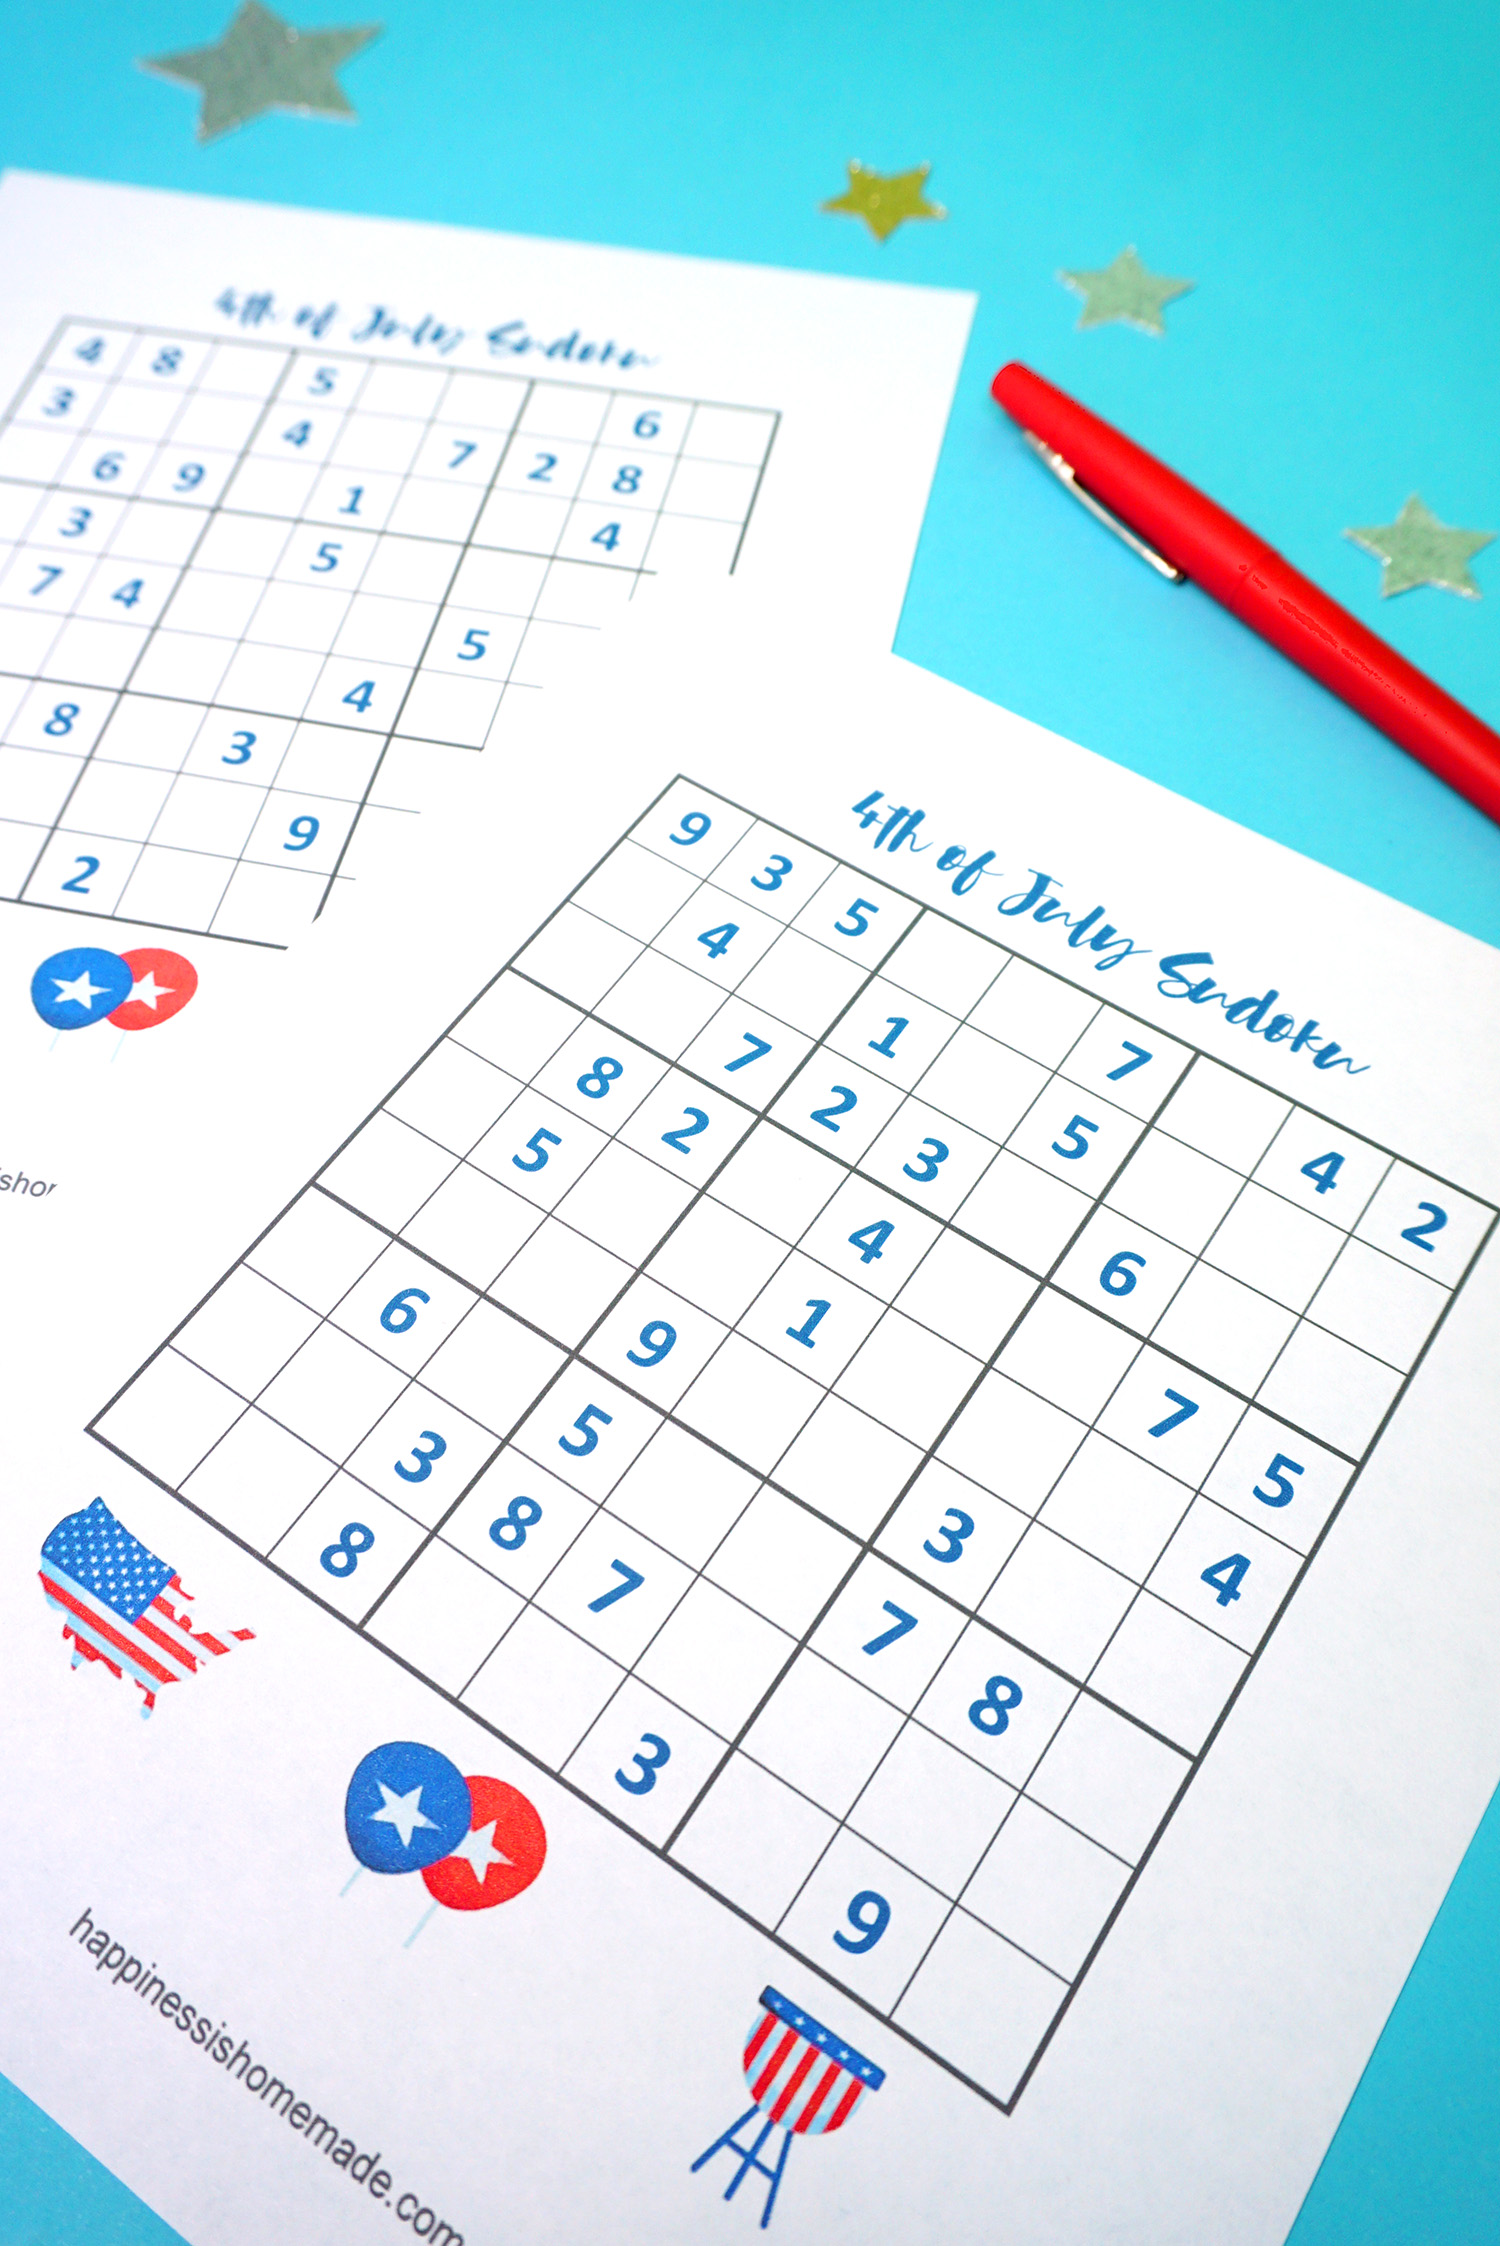 4th of July Printable Sudoku Puzzles + Logic Puzzle - Happiness is